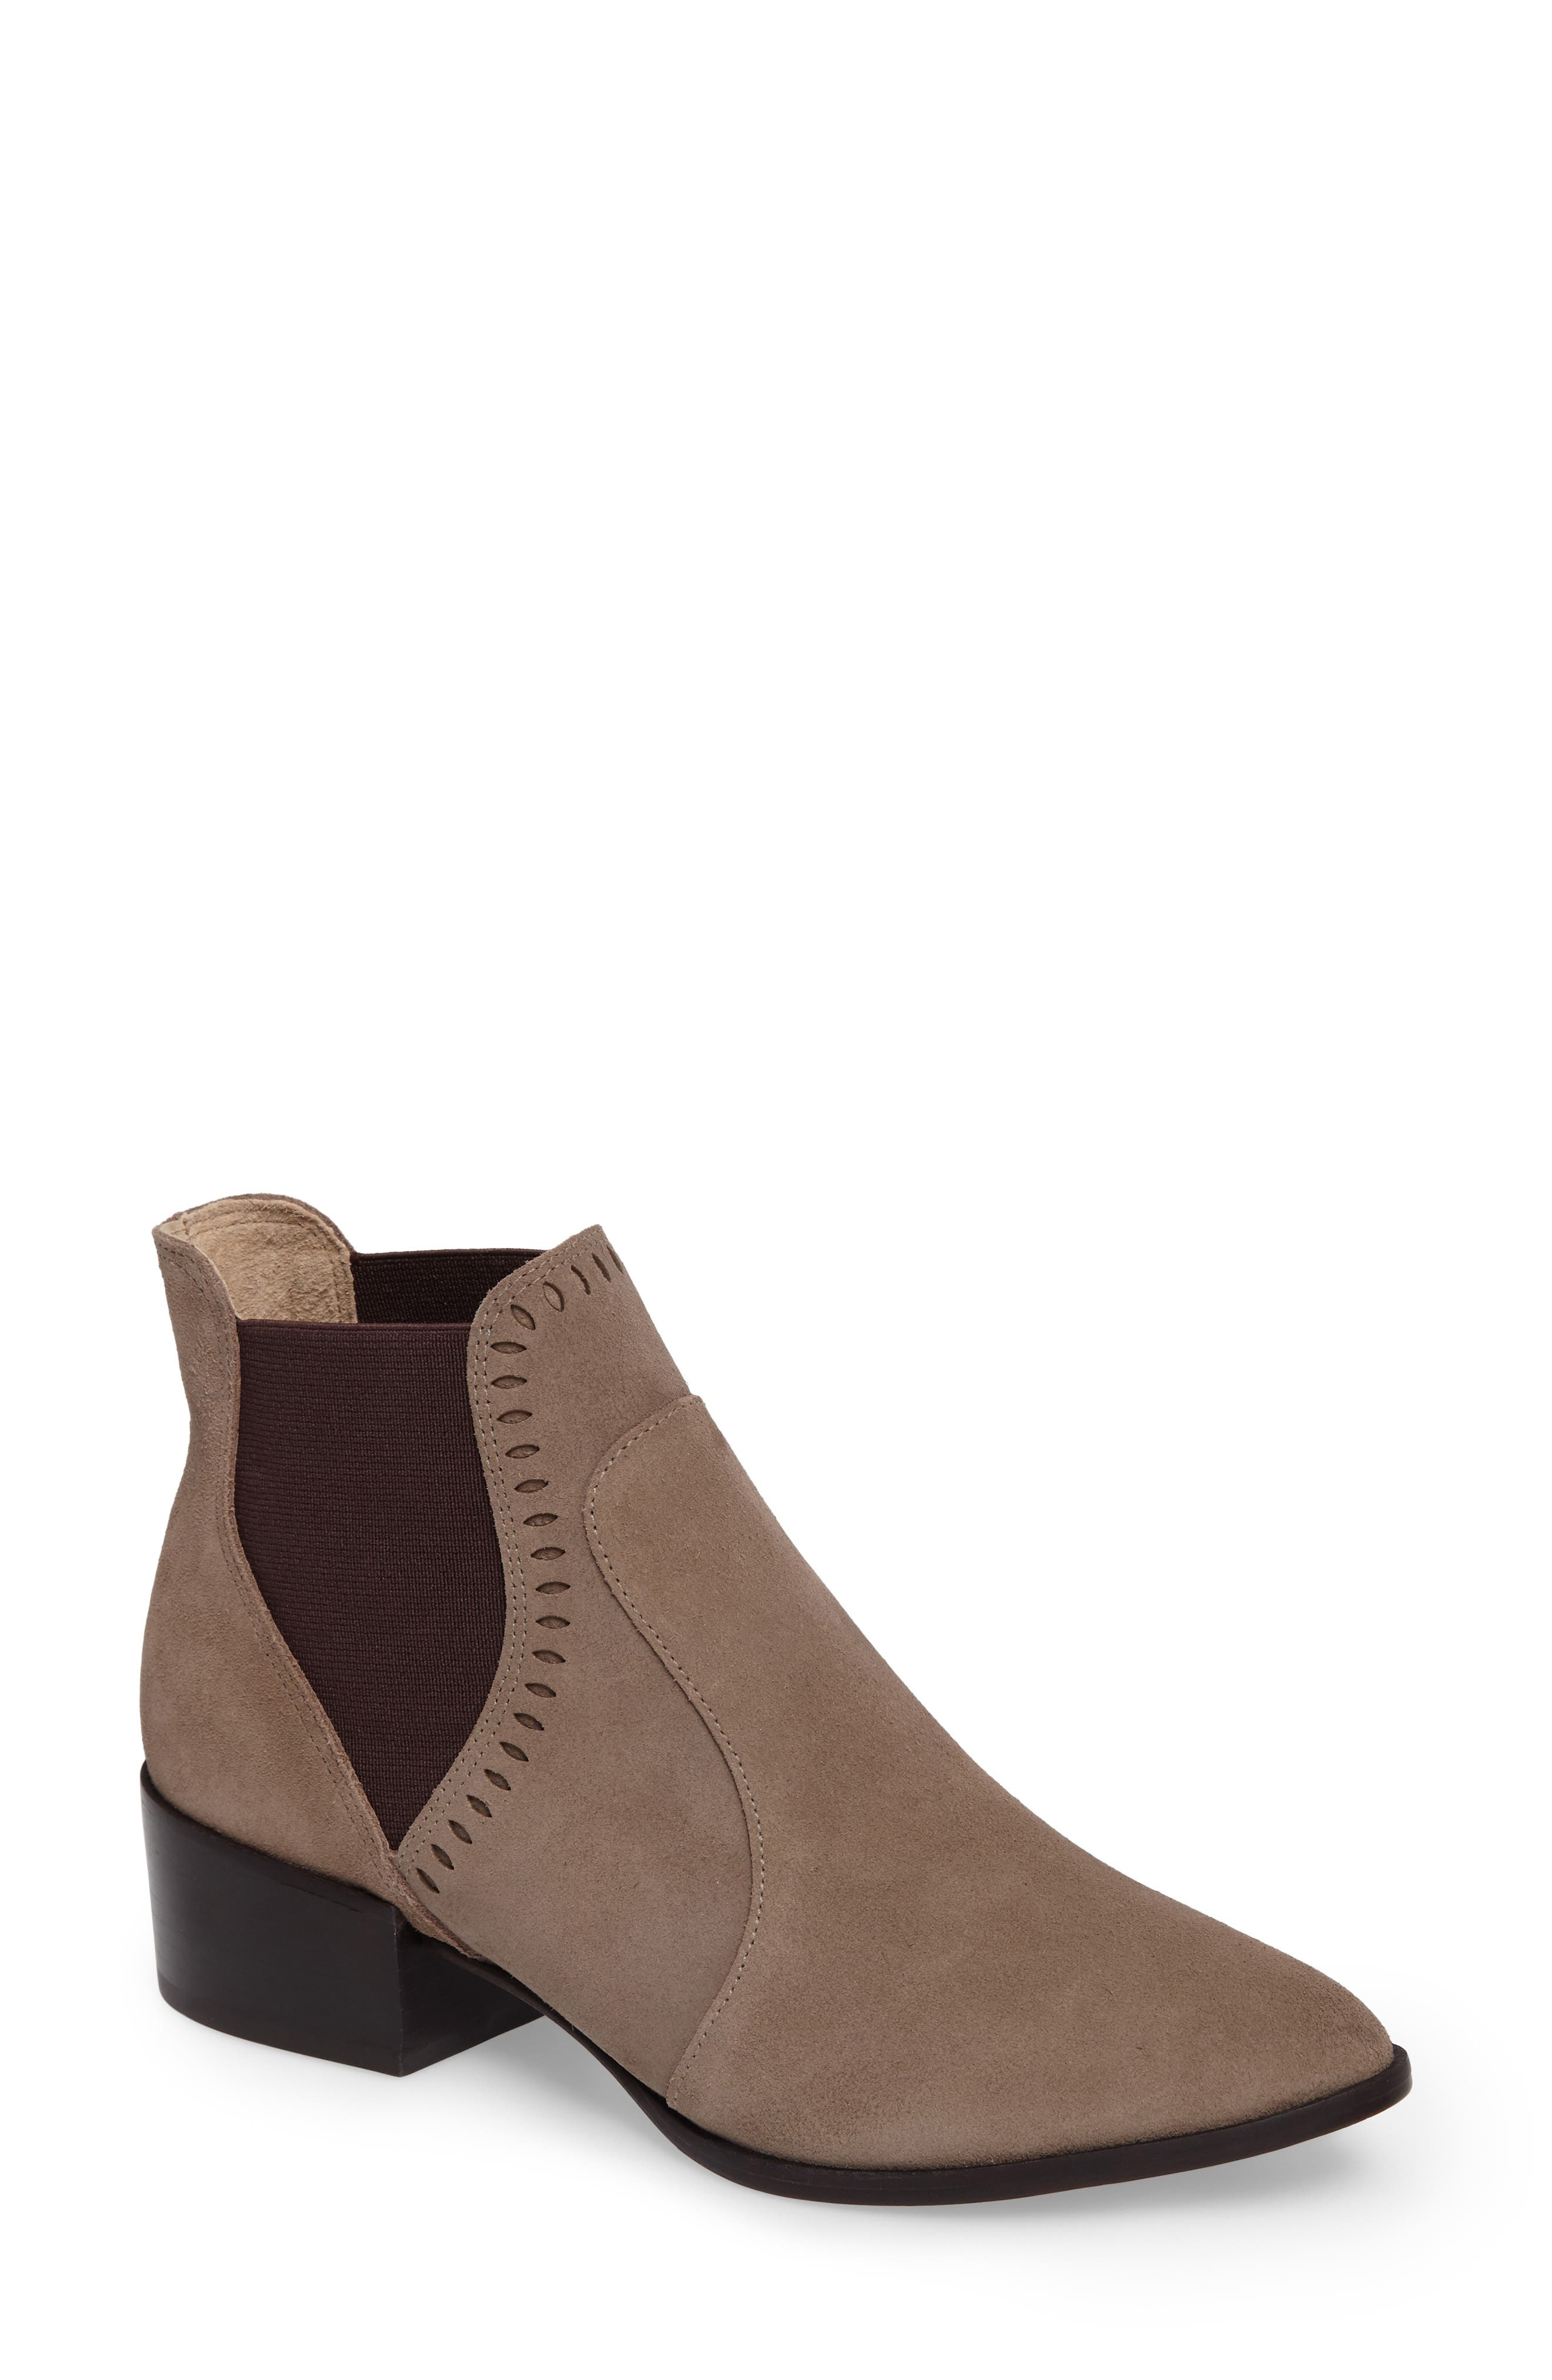 Zafira Chelsea Boot,                         Main,                         color, Taupe Suede